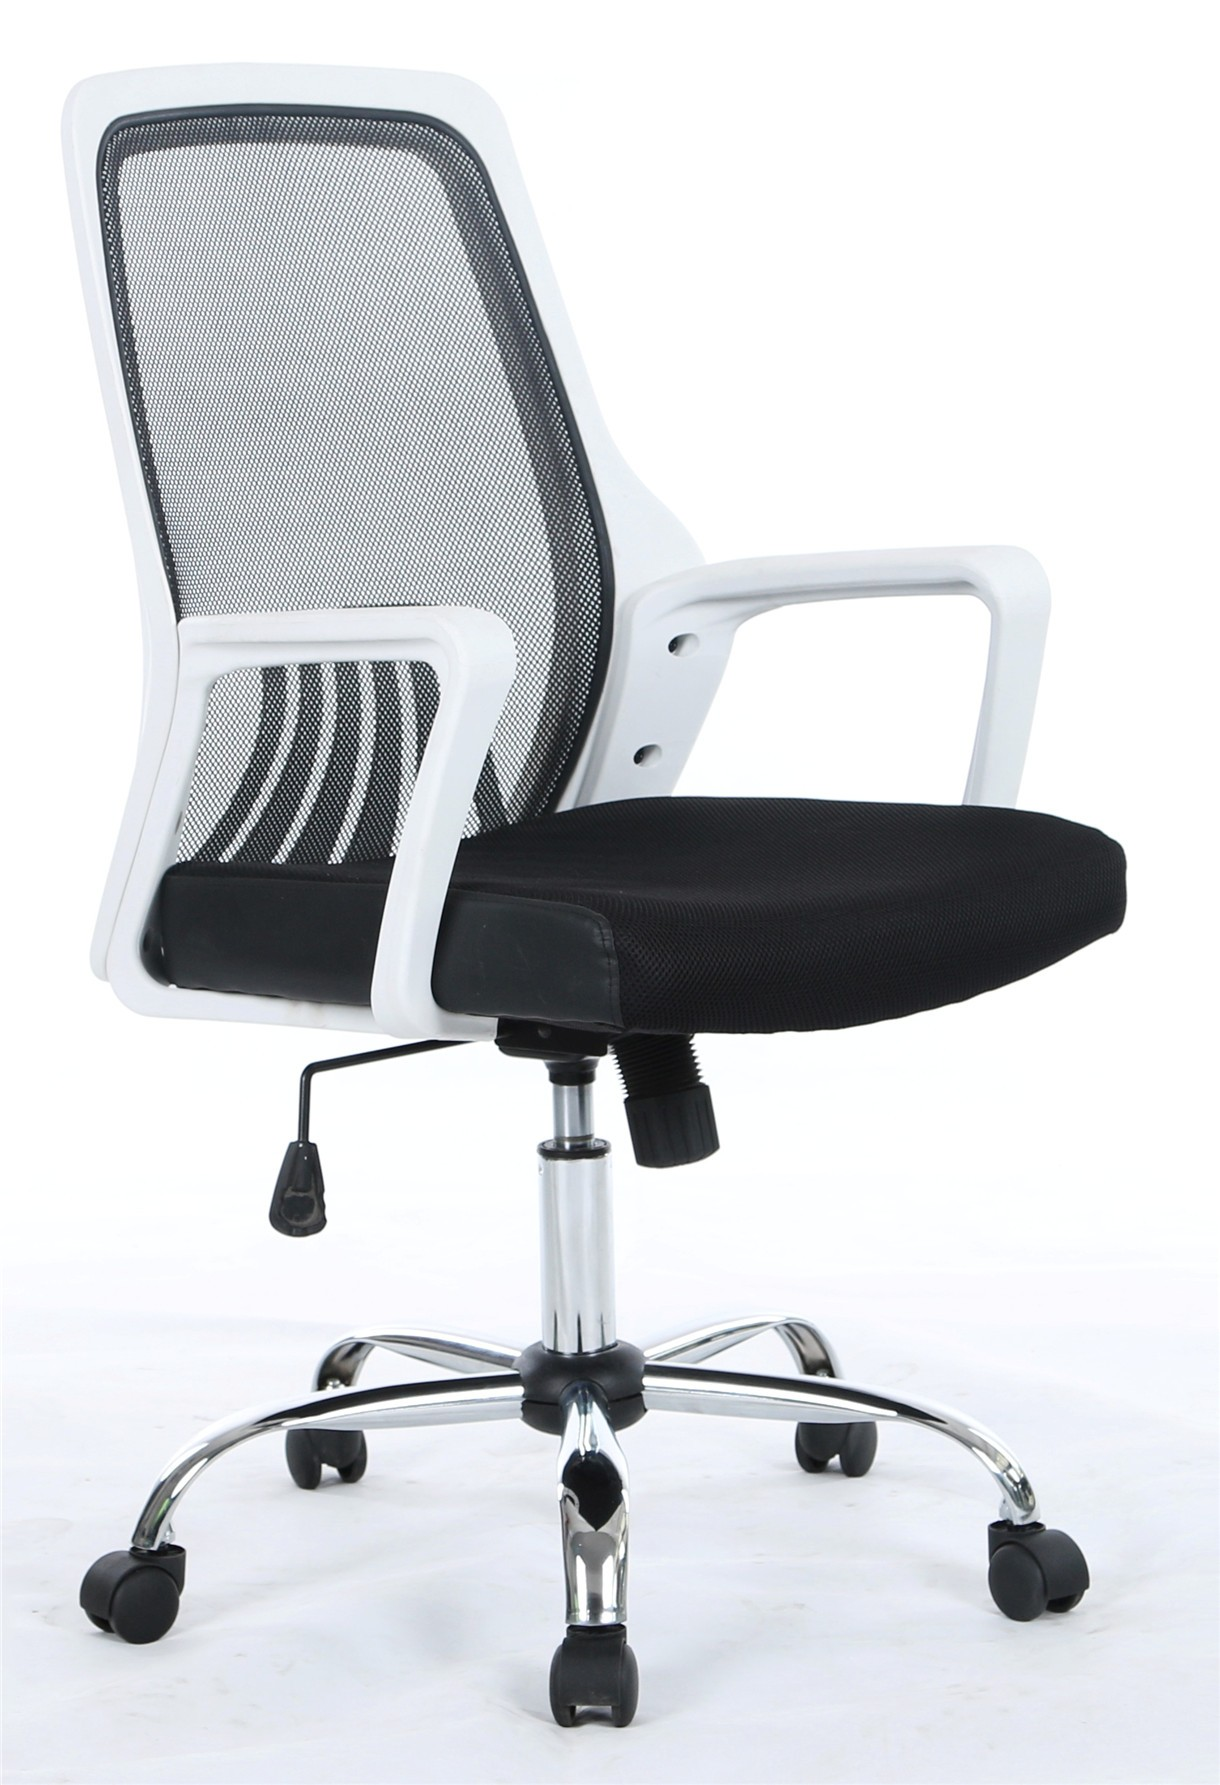 Office Armchair GREIT, White, Gas, Rocker, Mesh And Black Fabric